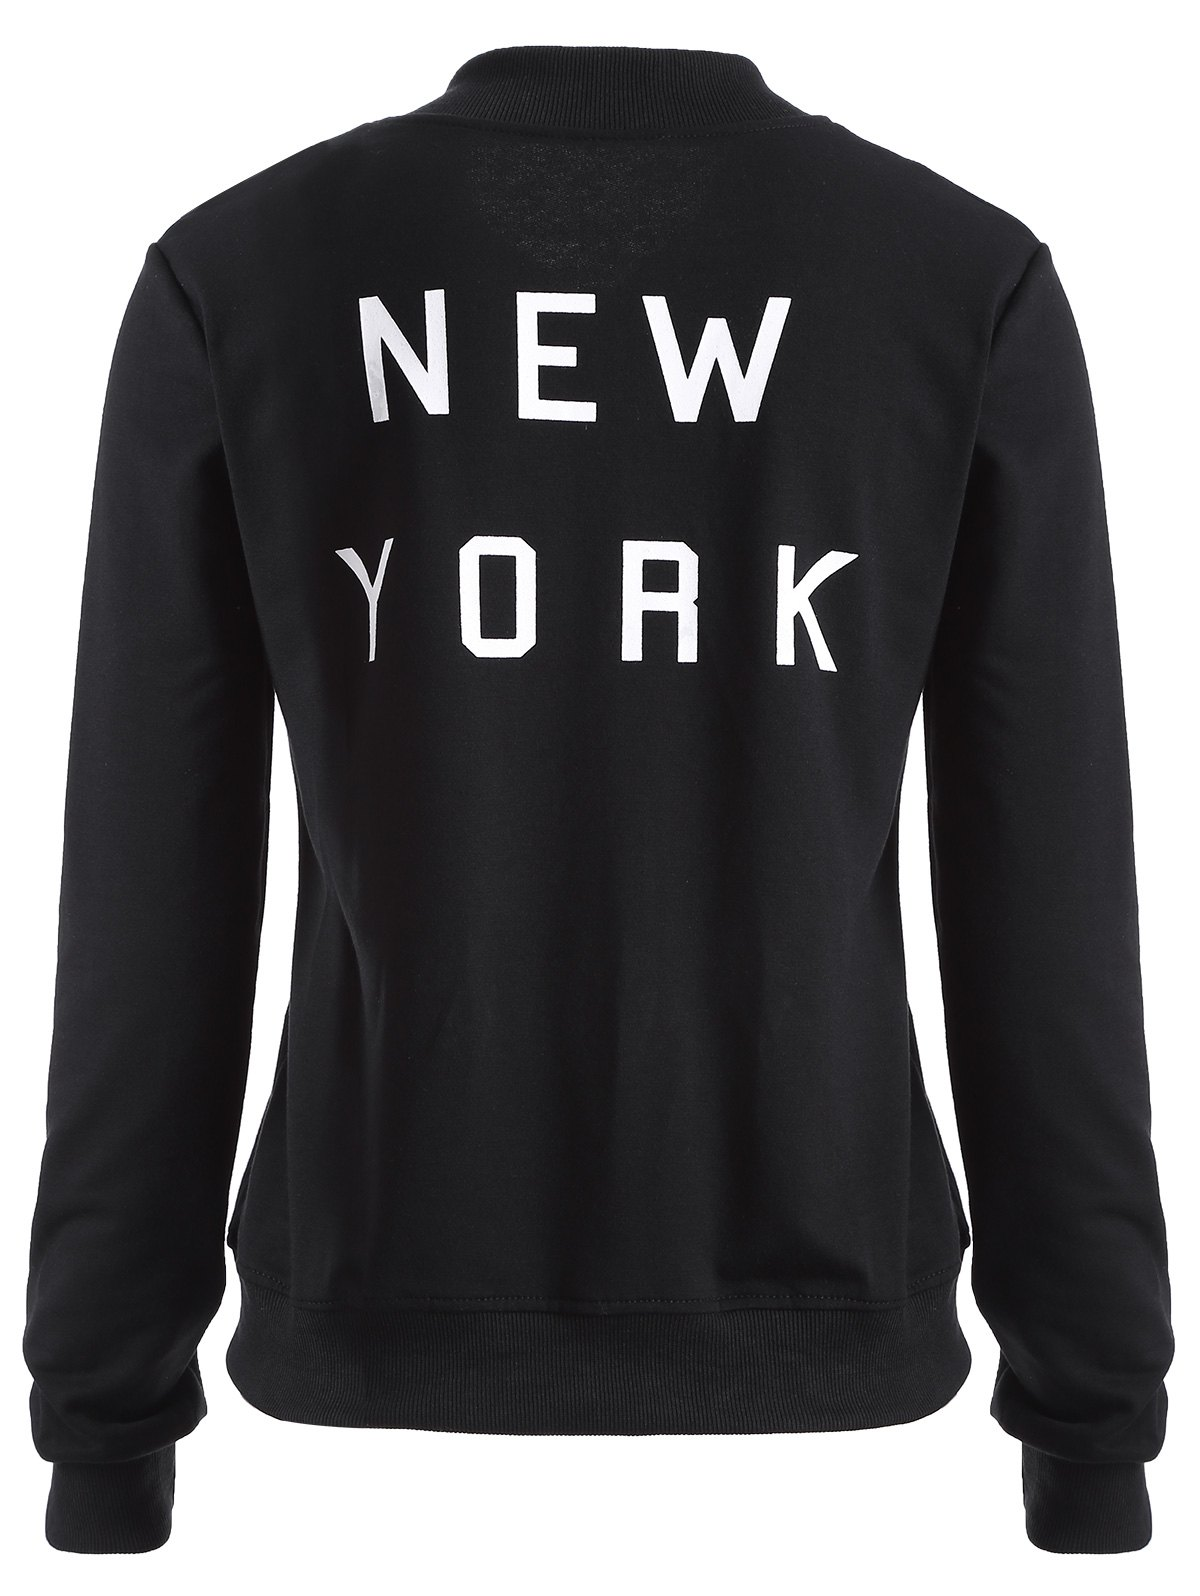 New York Print Zip Up Jacket